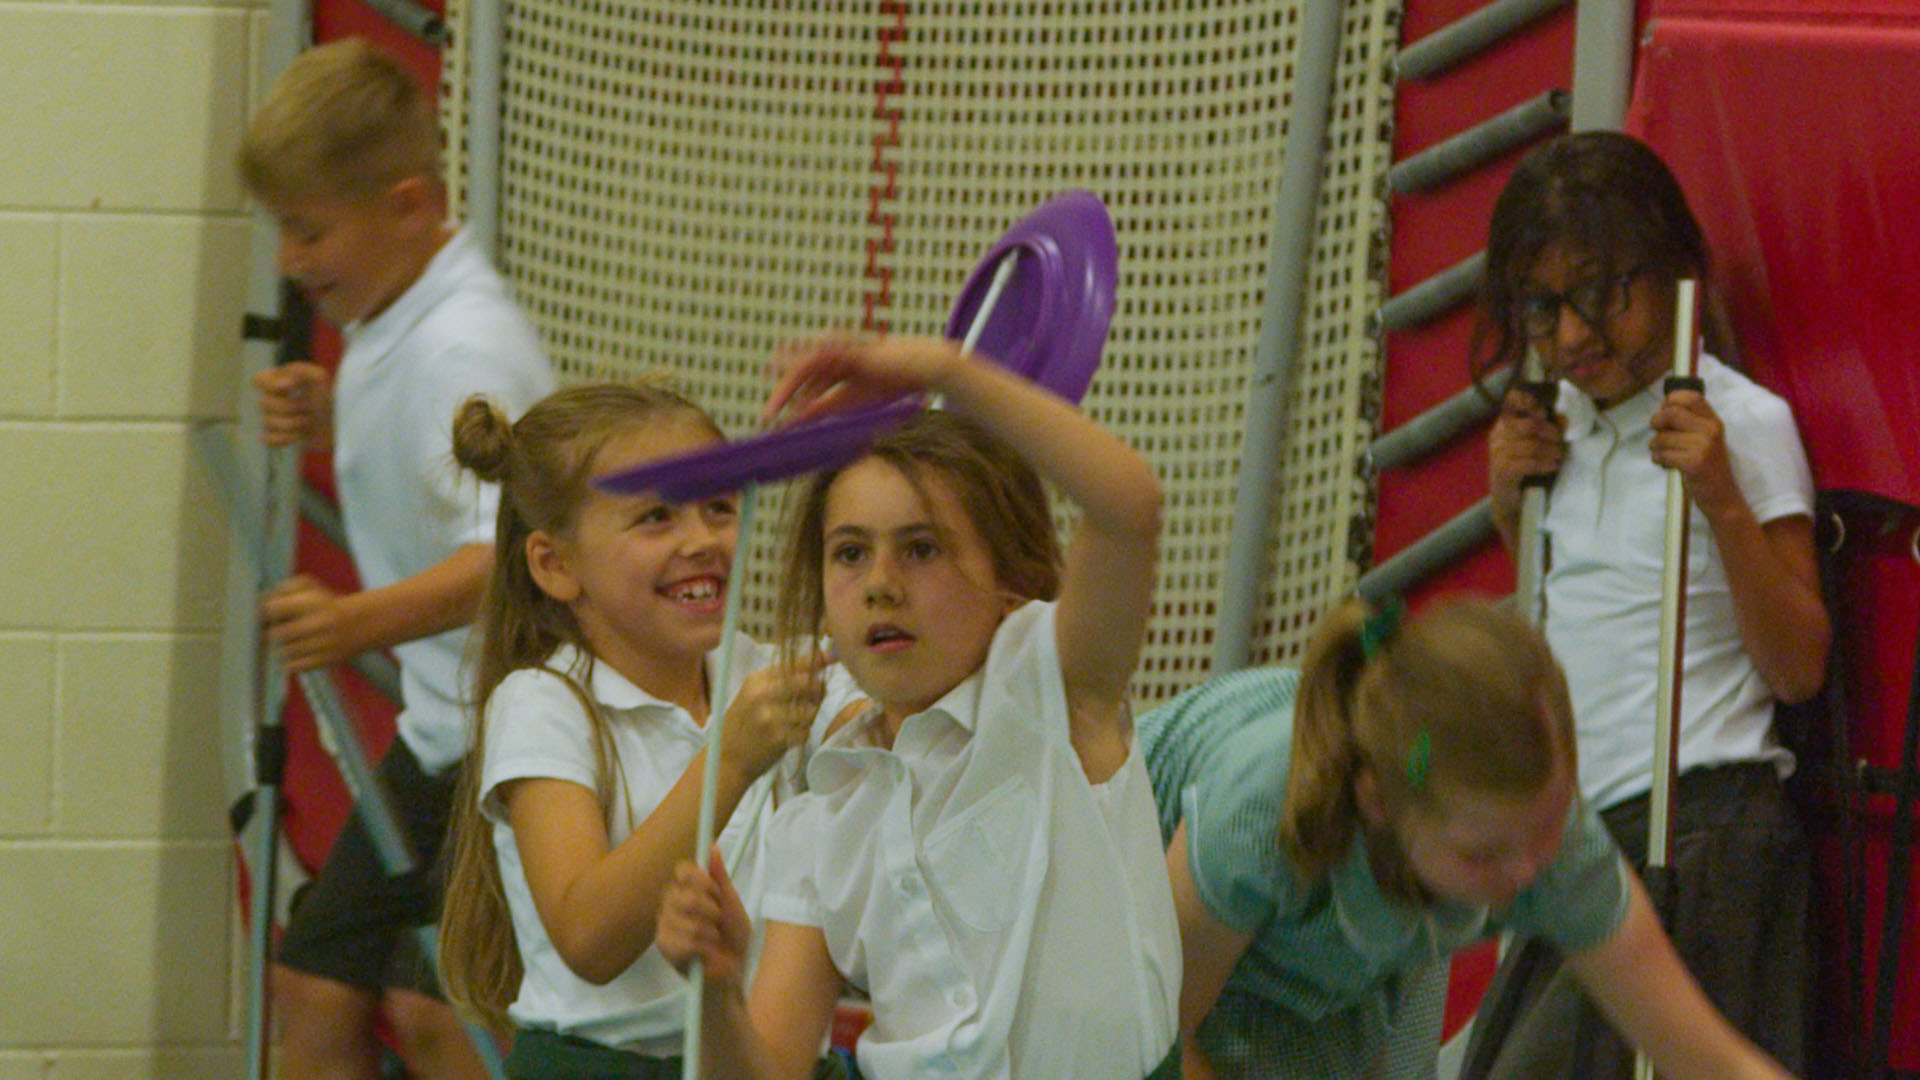 School children balancing purple plate in circus workshop